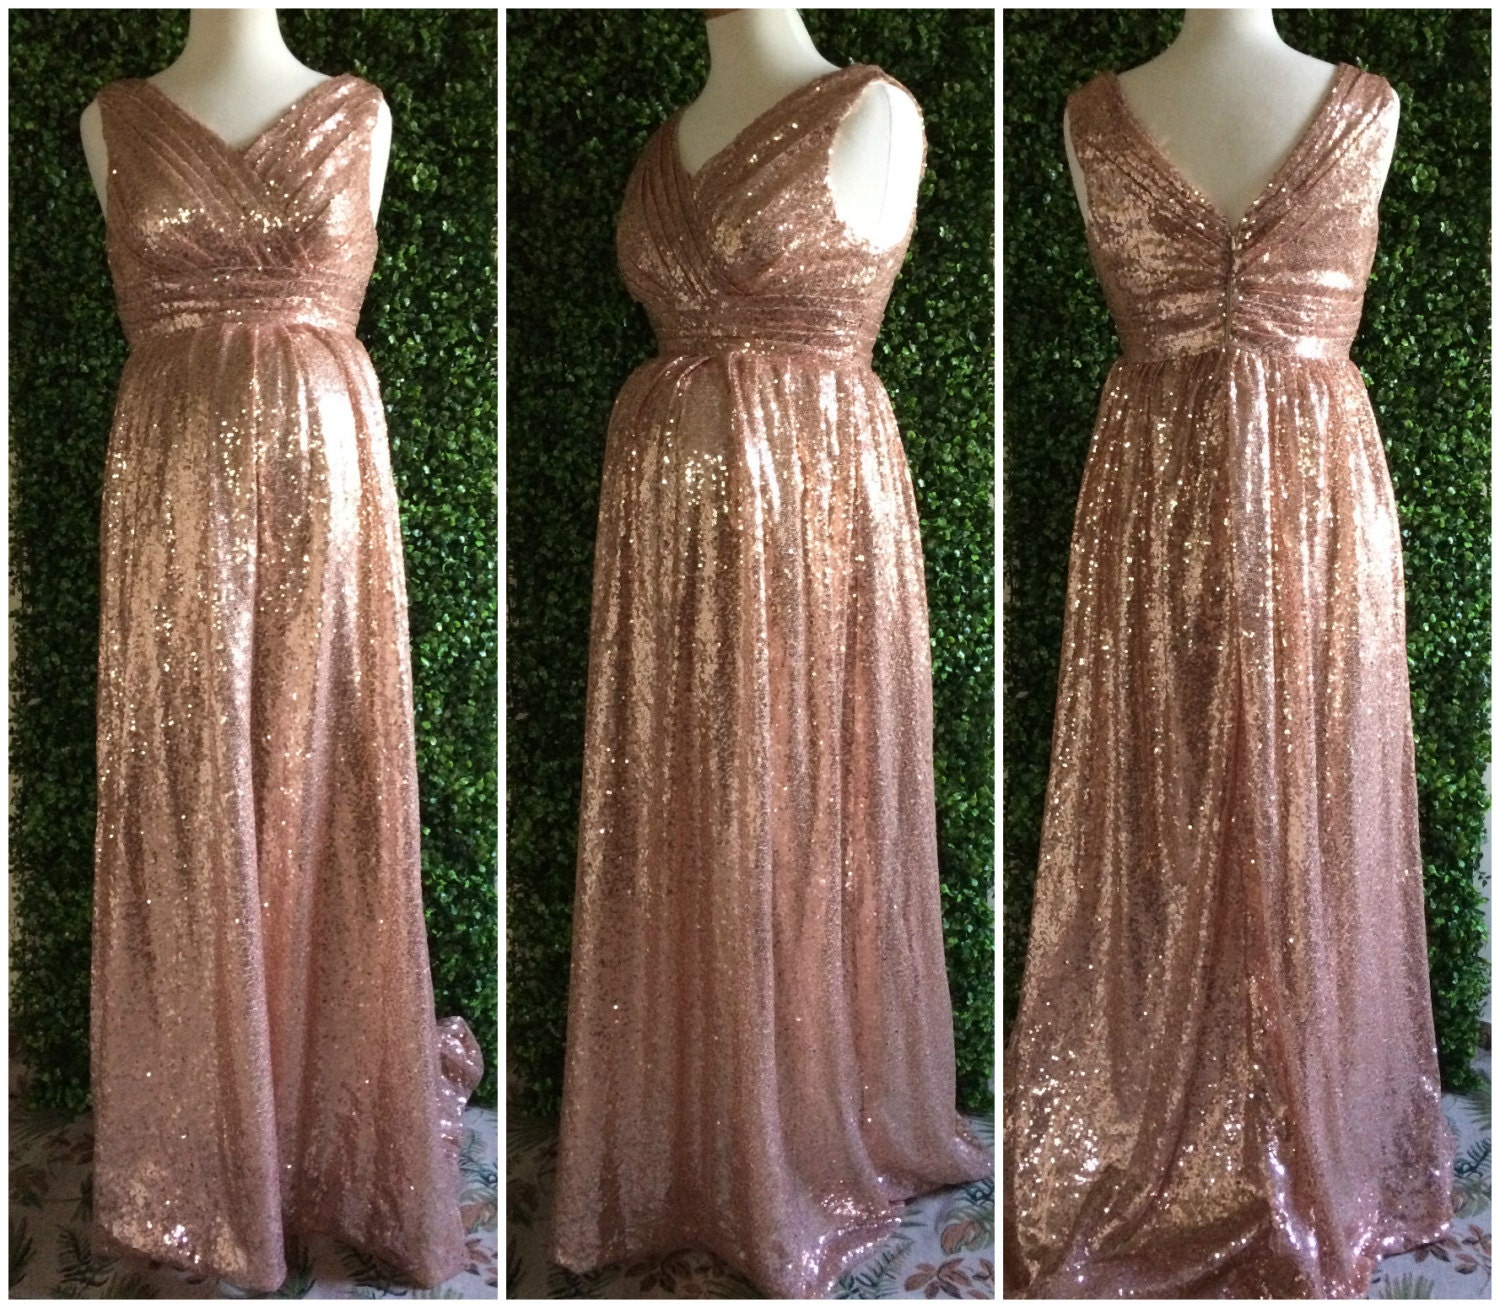 Sequin maternity bridesmaid dress rose gold sequin request a custom order and have something made just for you ombrellifo Images